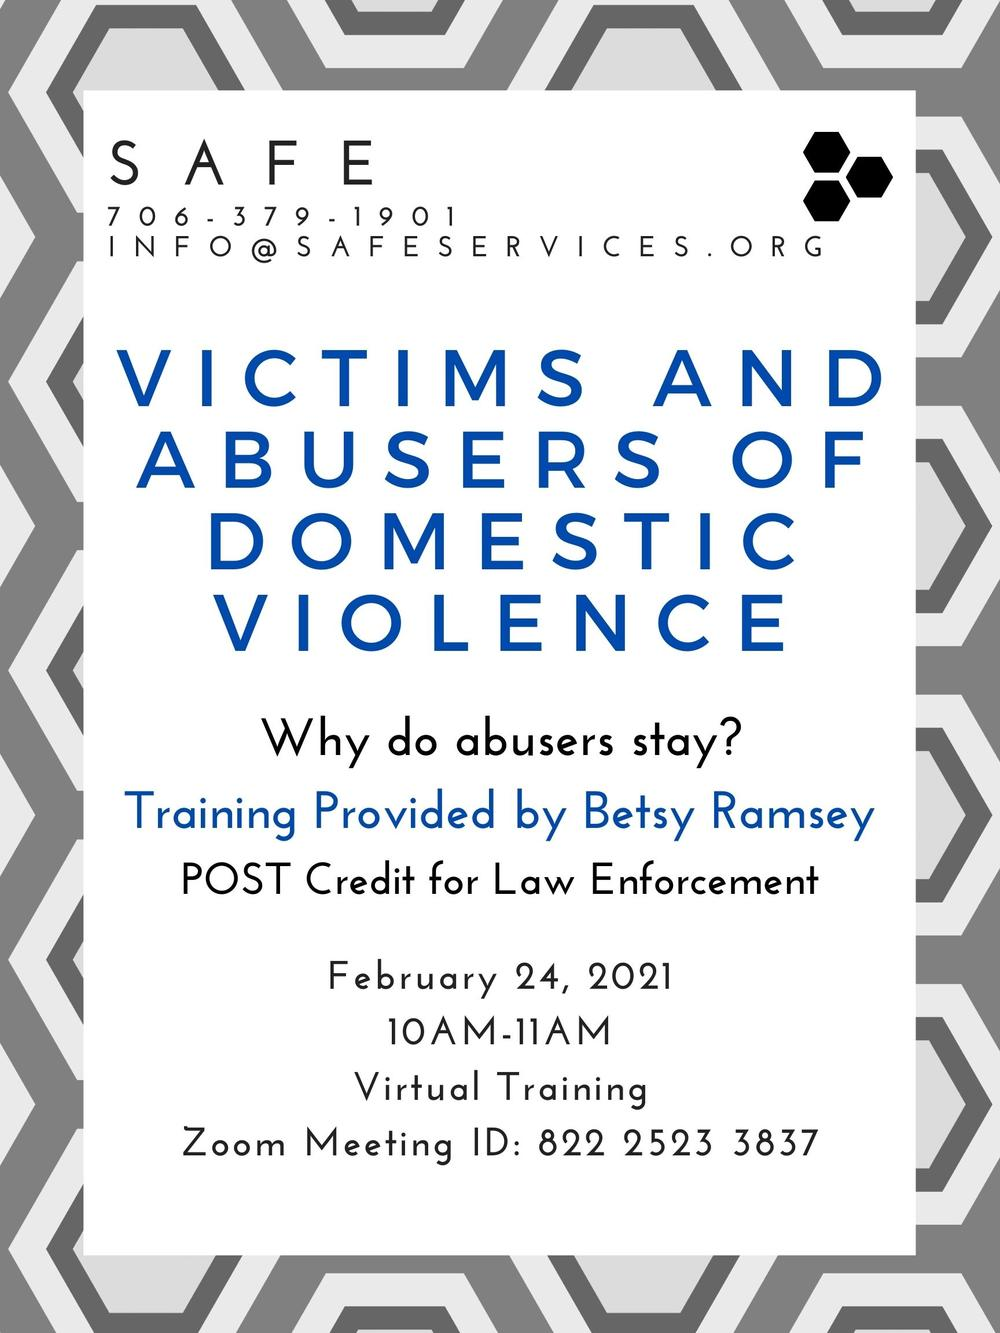 Virtual Training Flyer: Victims and Abusers of Domestic Violence